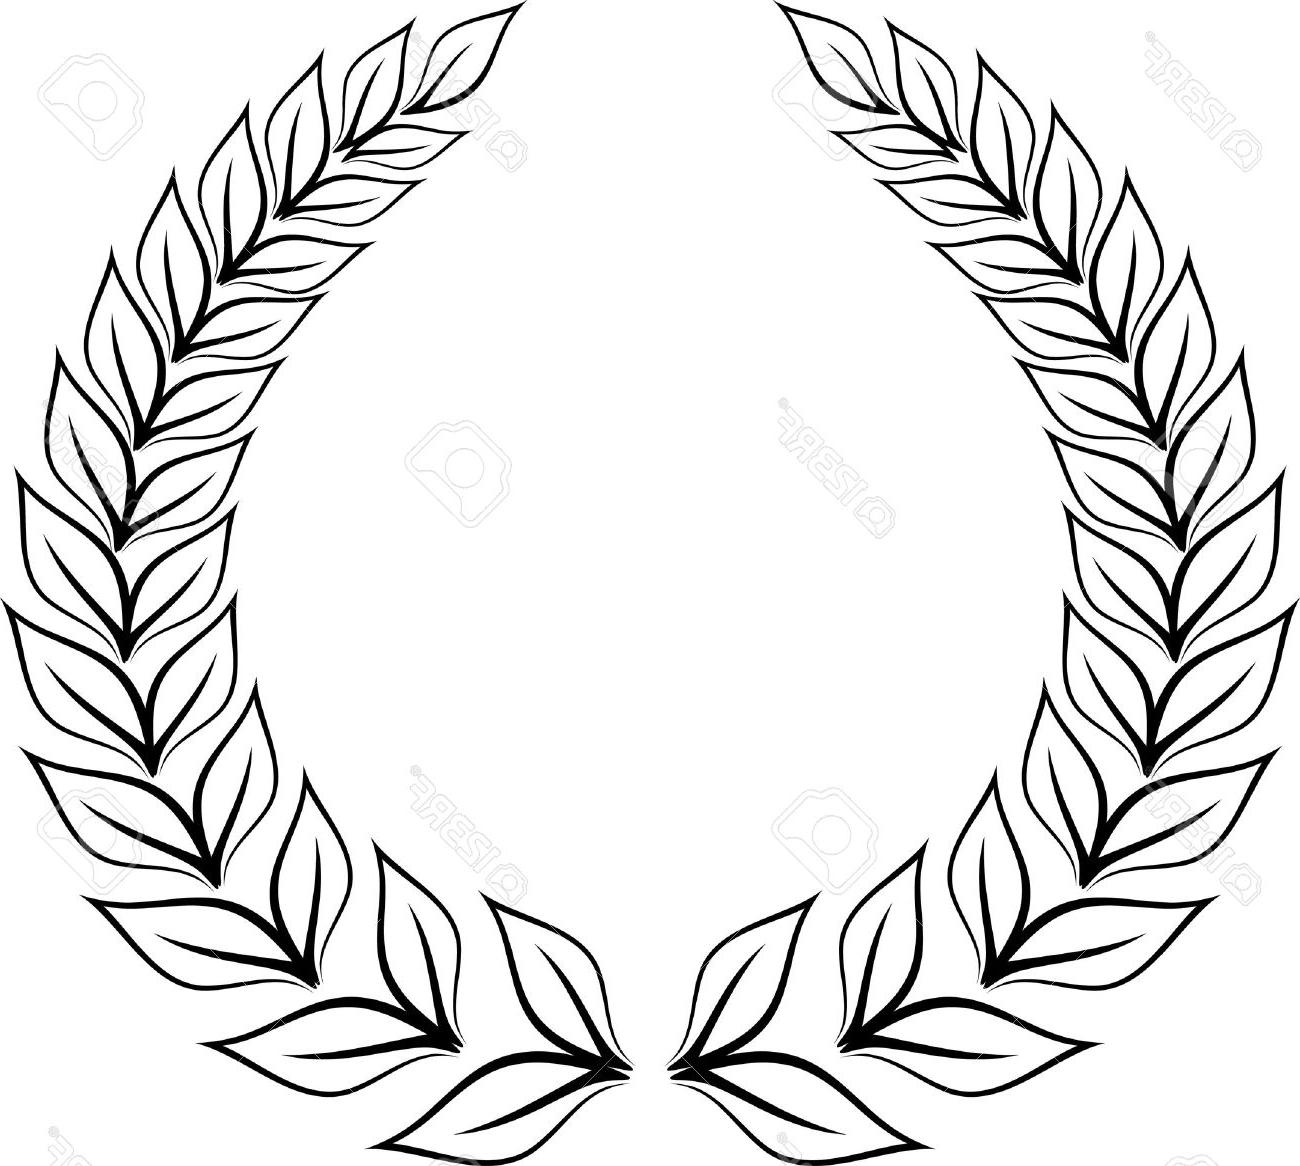 Olive Wreath Clipart